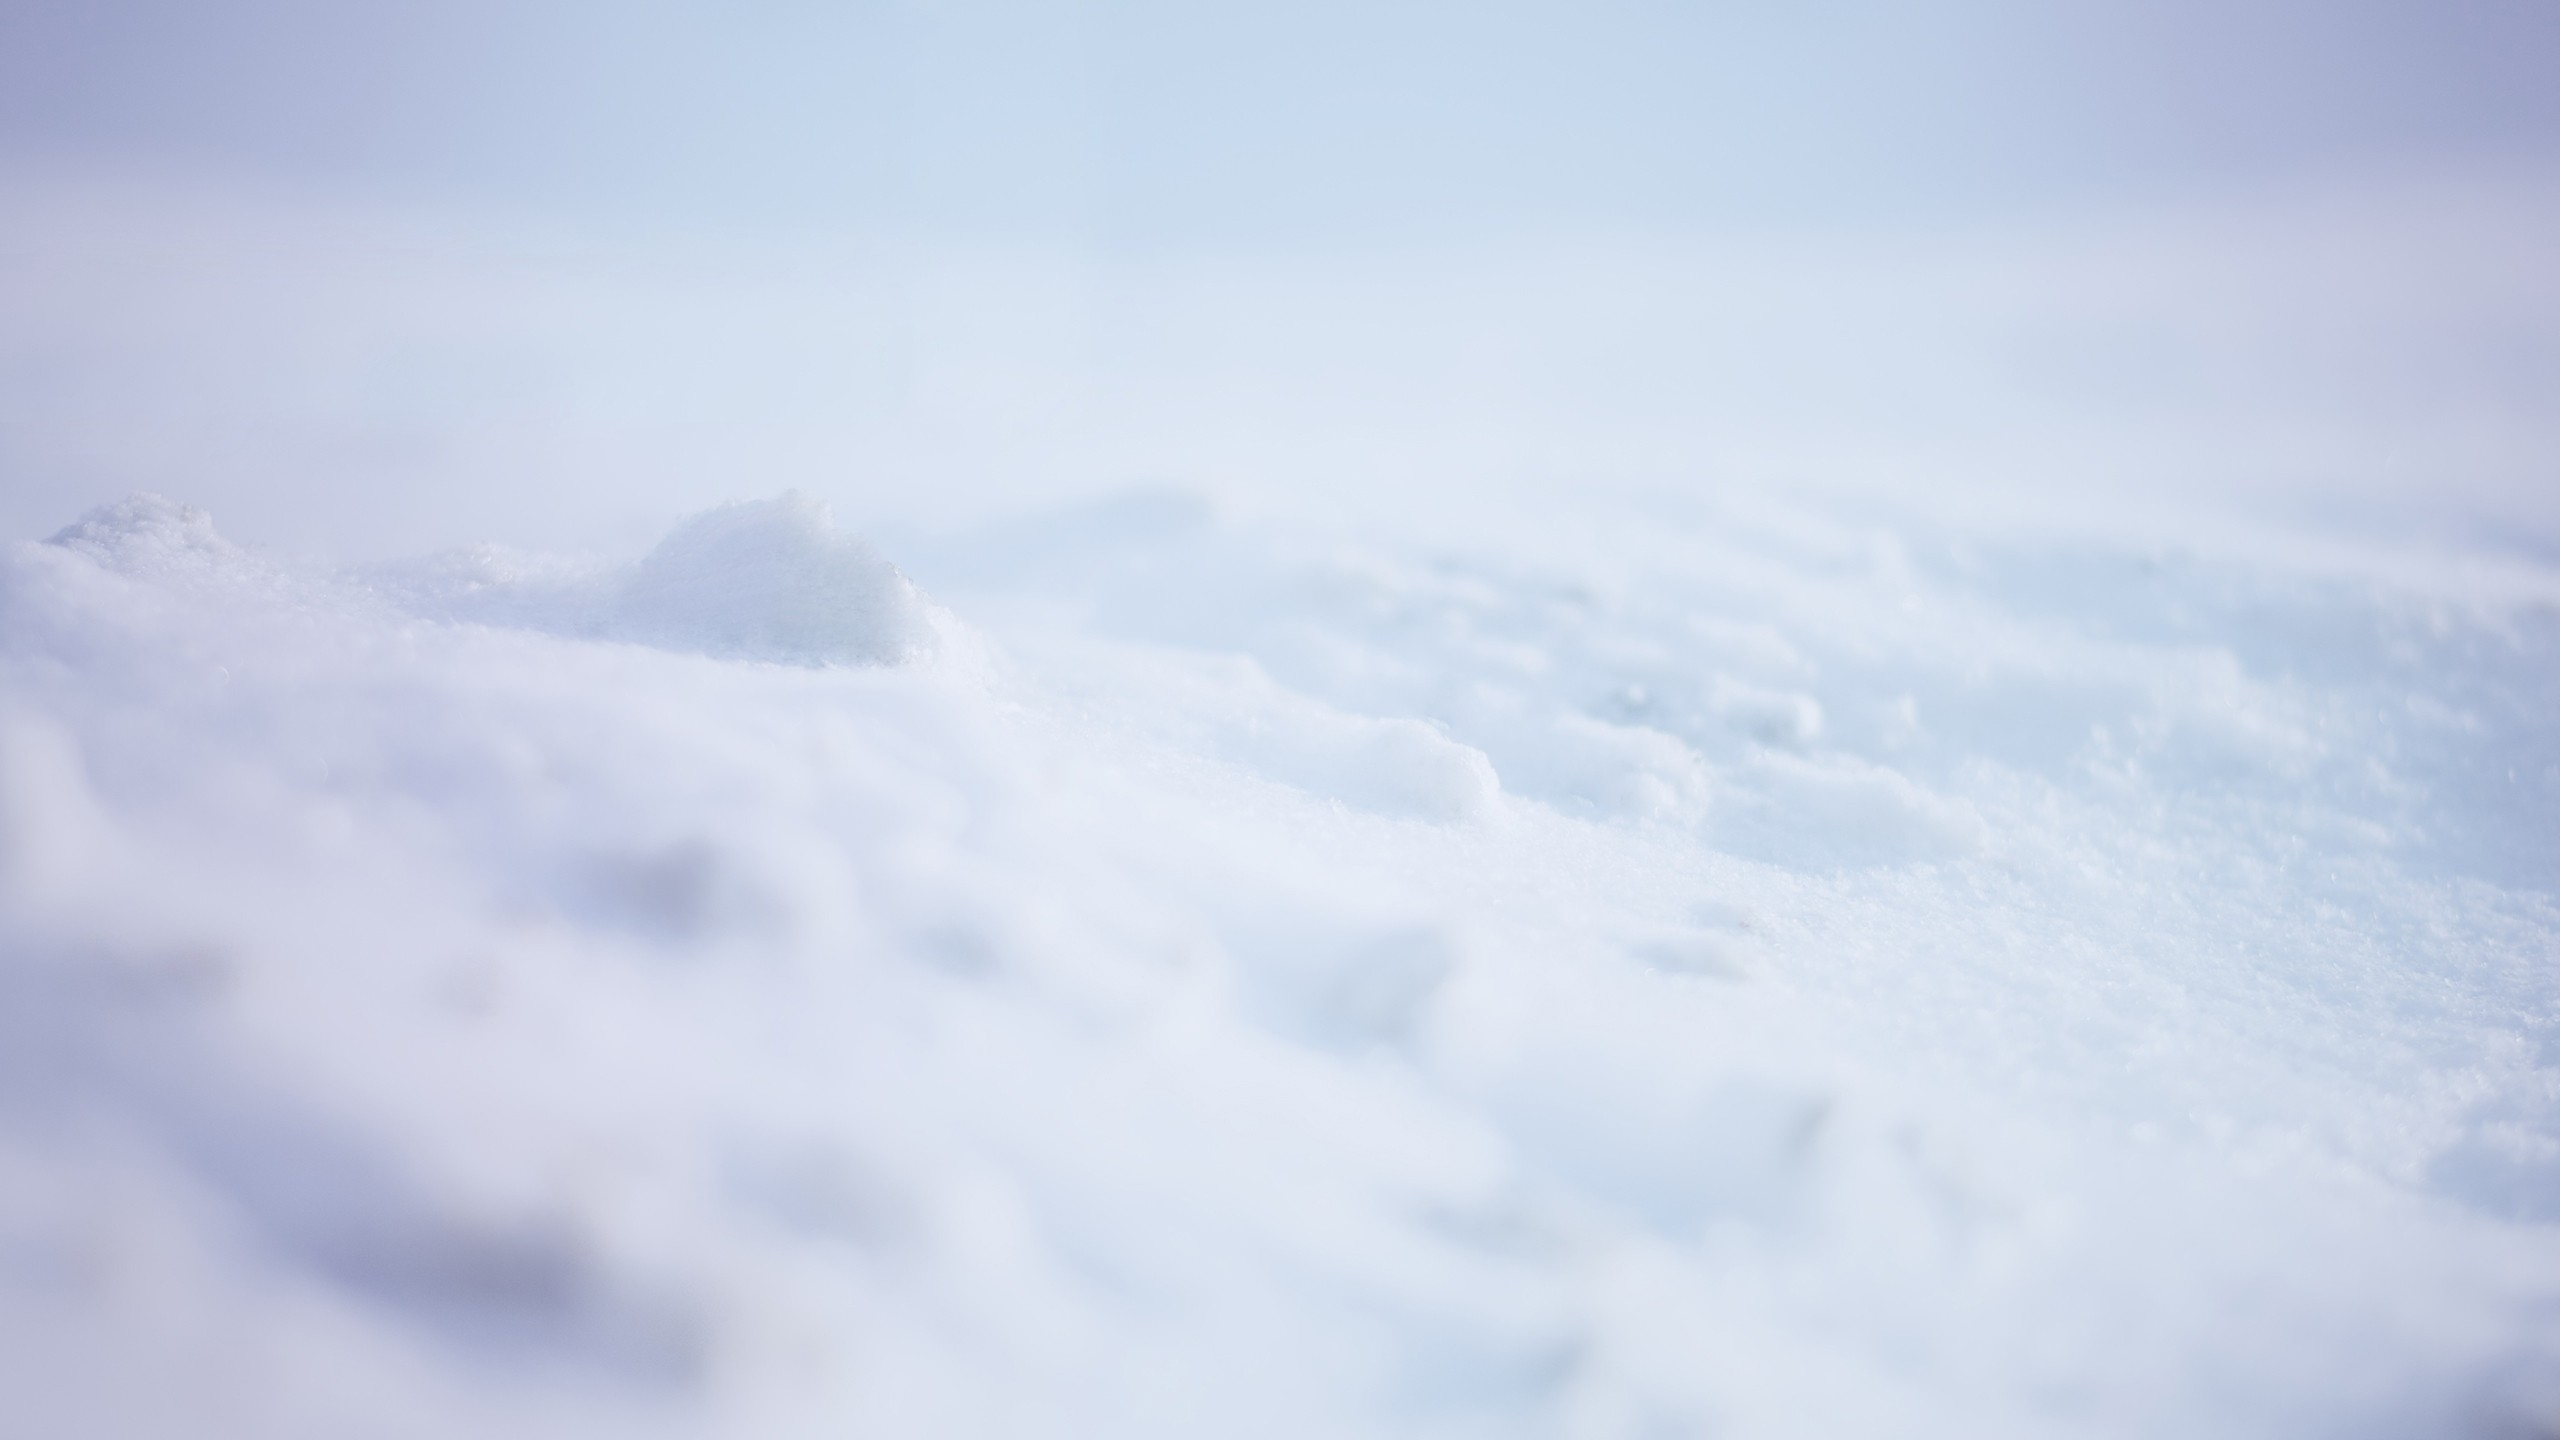 2560x1440 Wallpaper snow, white, background, surface